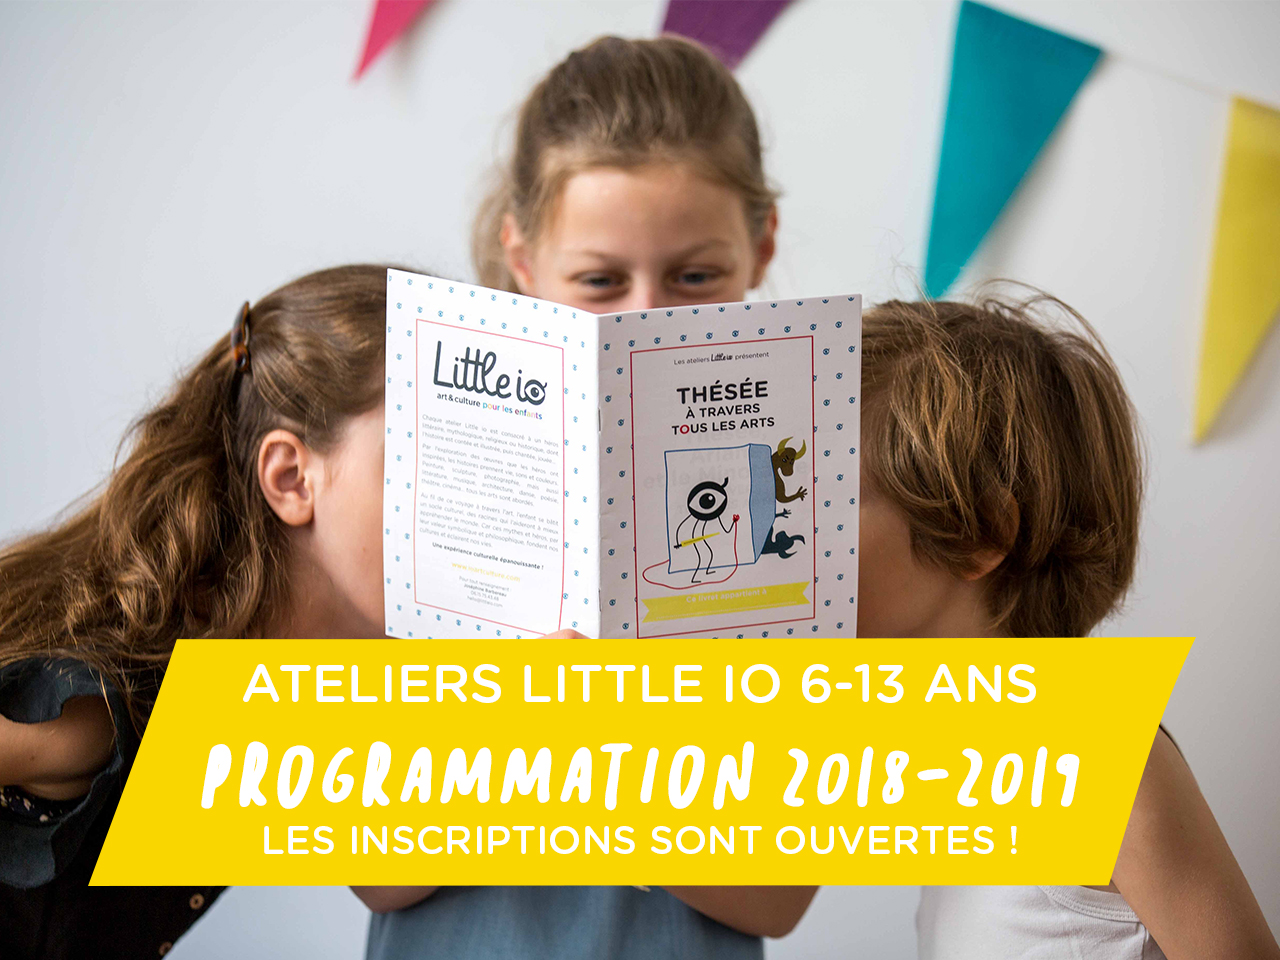 programmation 2018 2019 ateliers little io